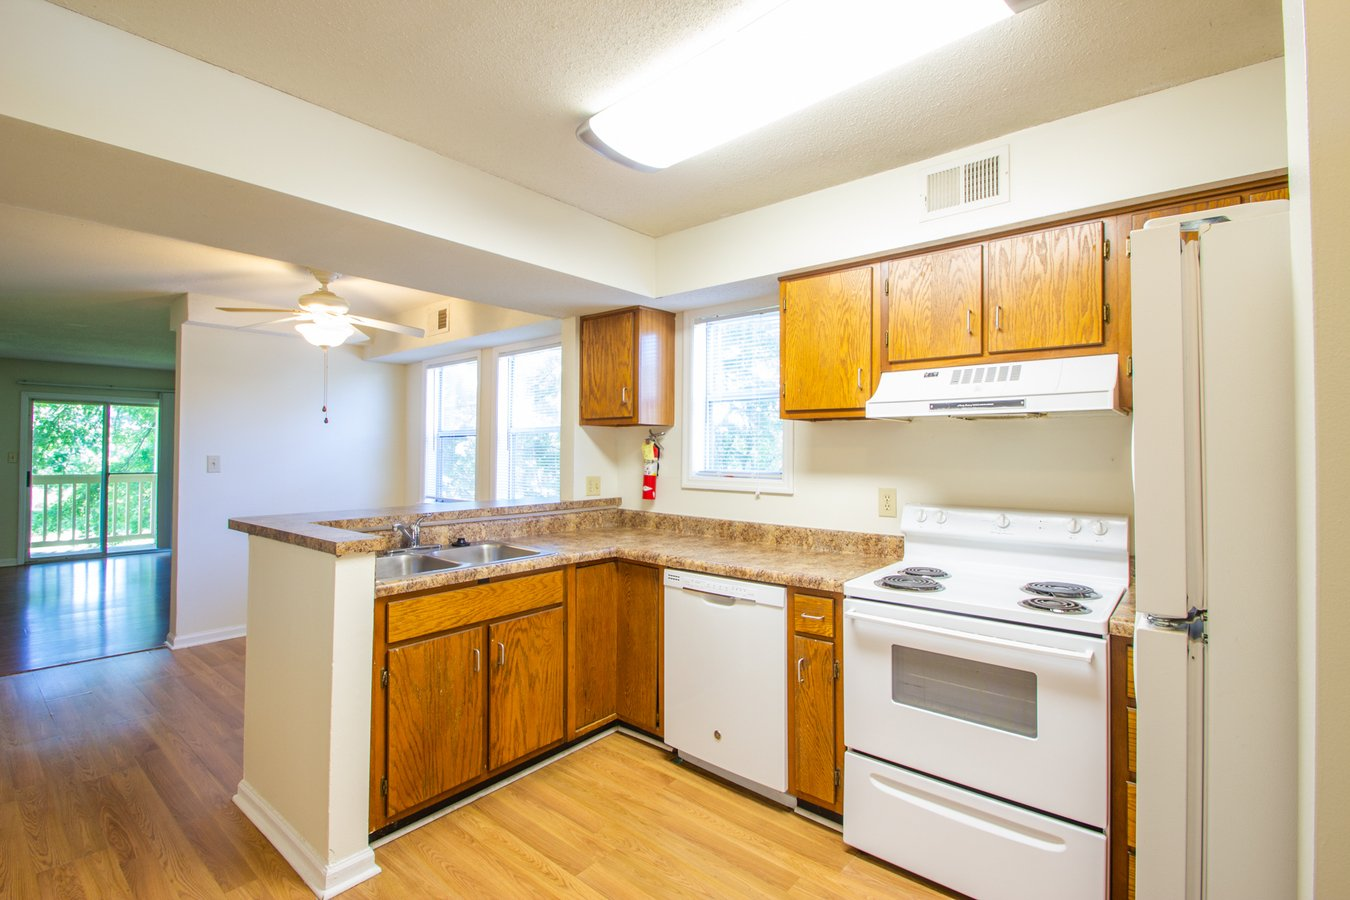 4 Bedrooms 3 Bathrooms Apartment for rent at Covenanter Hill Neighborhood District in Bloomington, IN